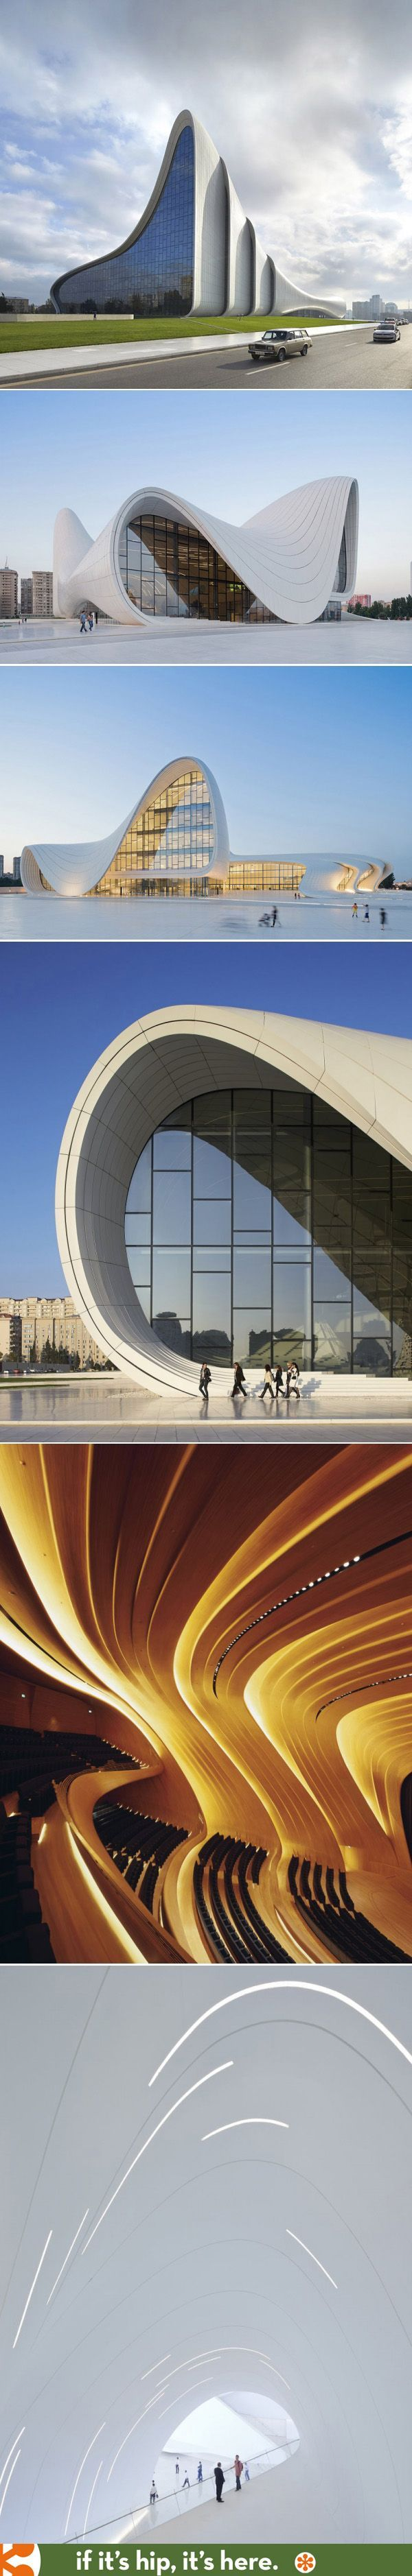 Zaha Hadid's Heydar Aliyev Centre wins 2014 Design Of The Year. With the alluring curves of the building and the interesting perspectives its wonder to how architecture keeps changing and becoming more complex. #architecture #curves #lighting: